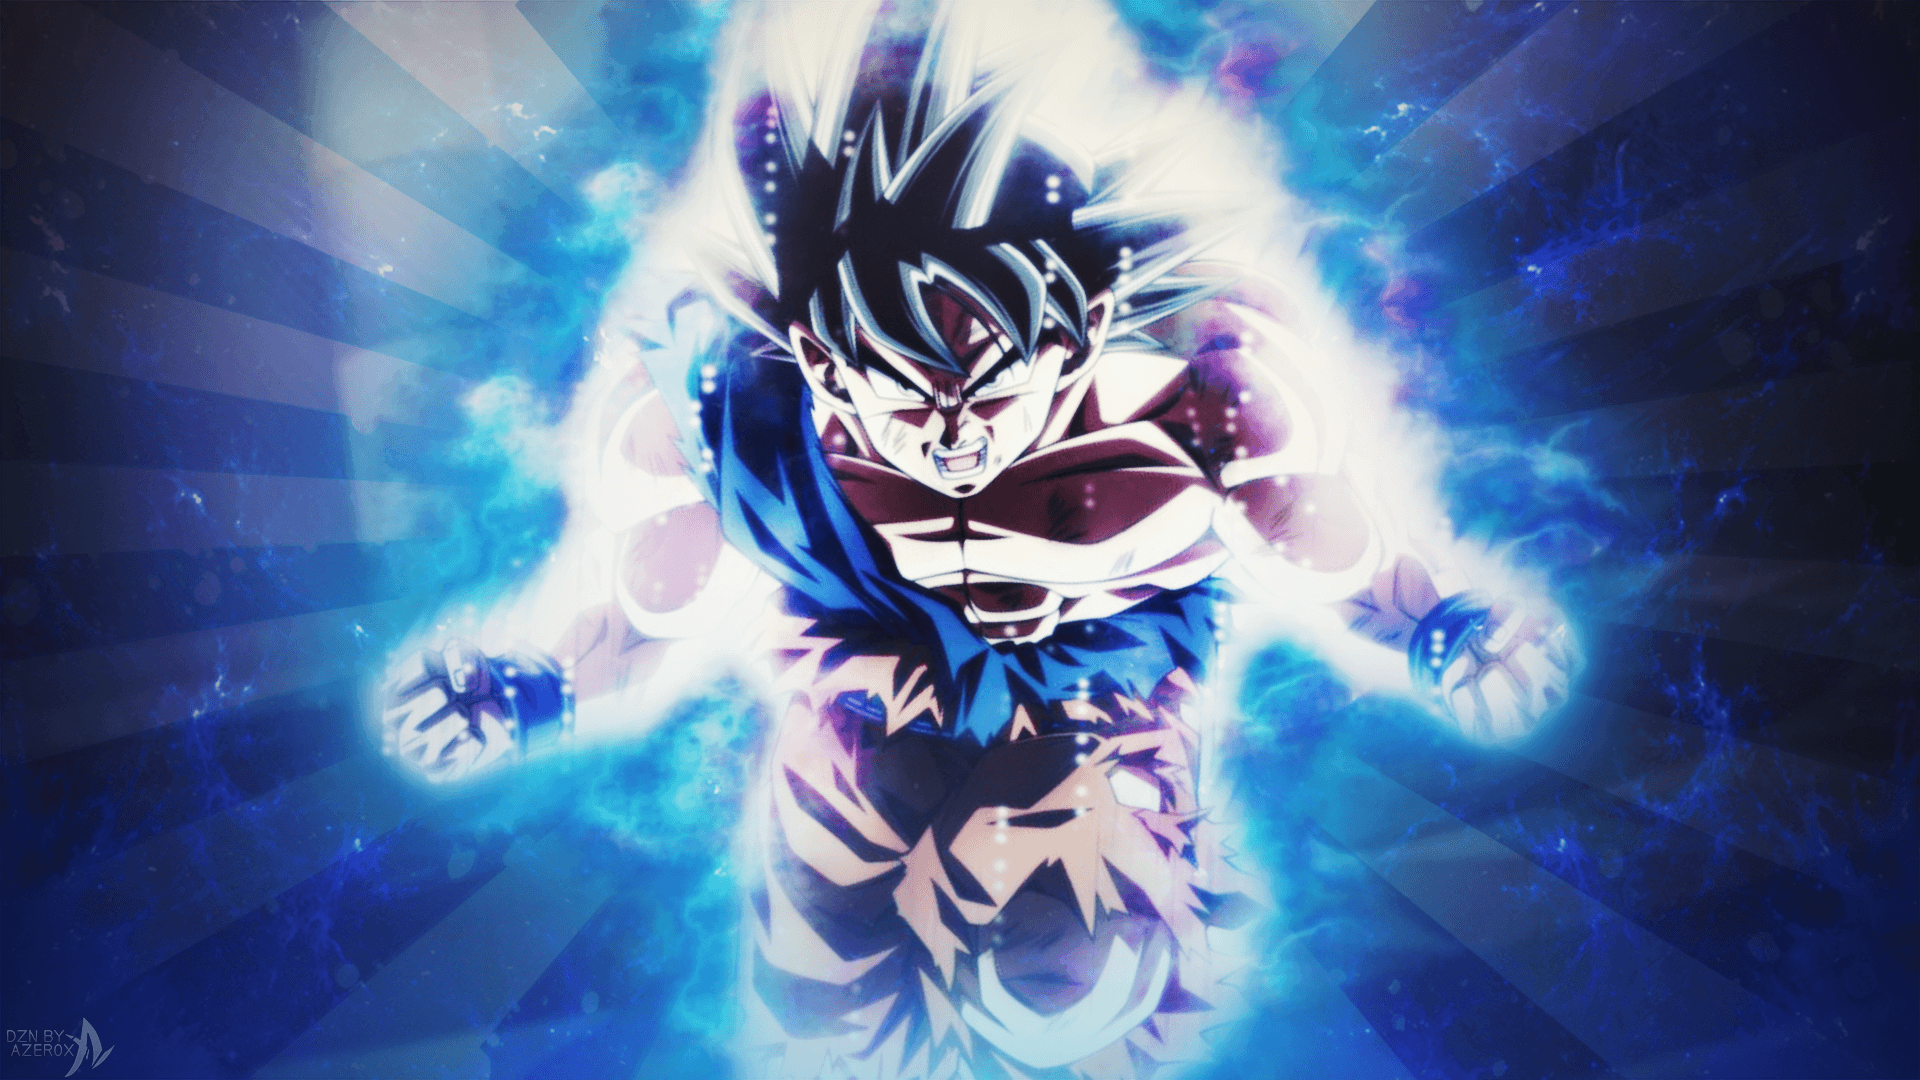 Goku Ultra Instinct Wallpapers Top Free Goku Ultra Instinct Backgrounds Wallpaperaccess